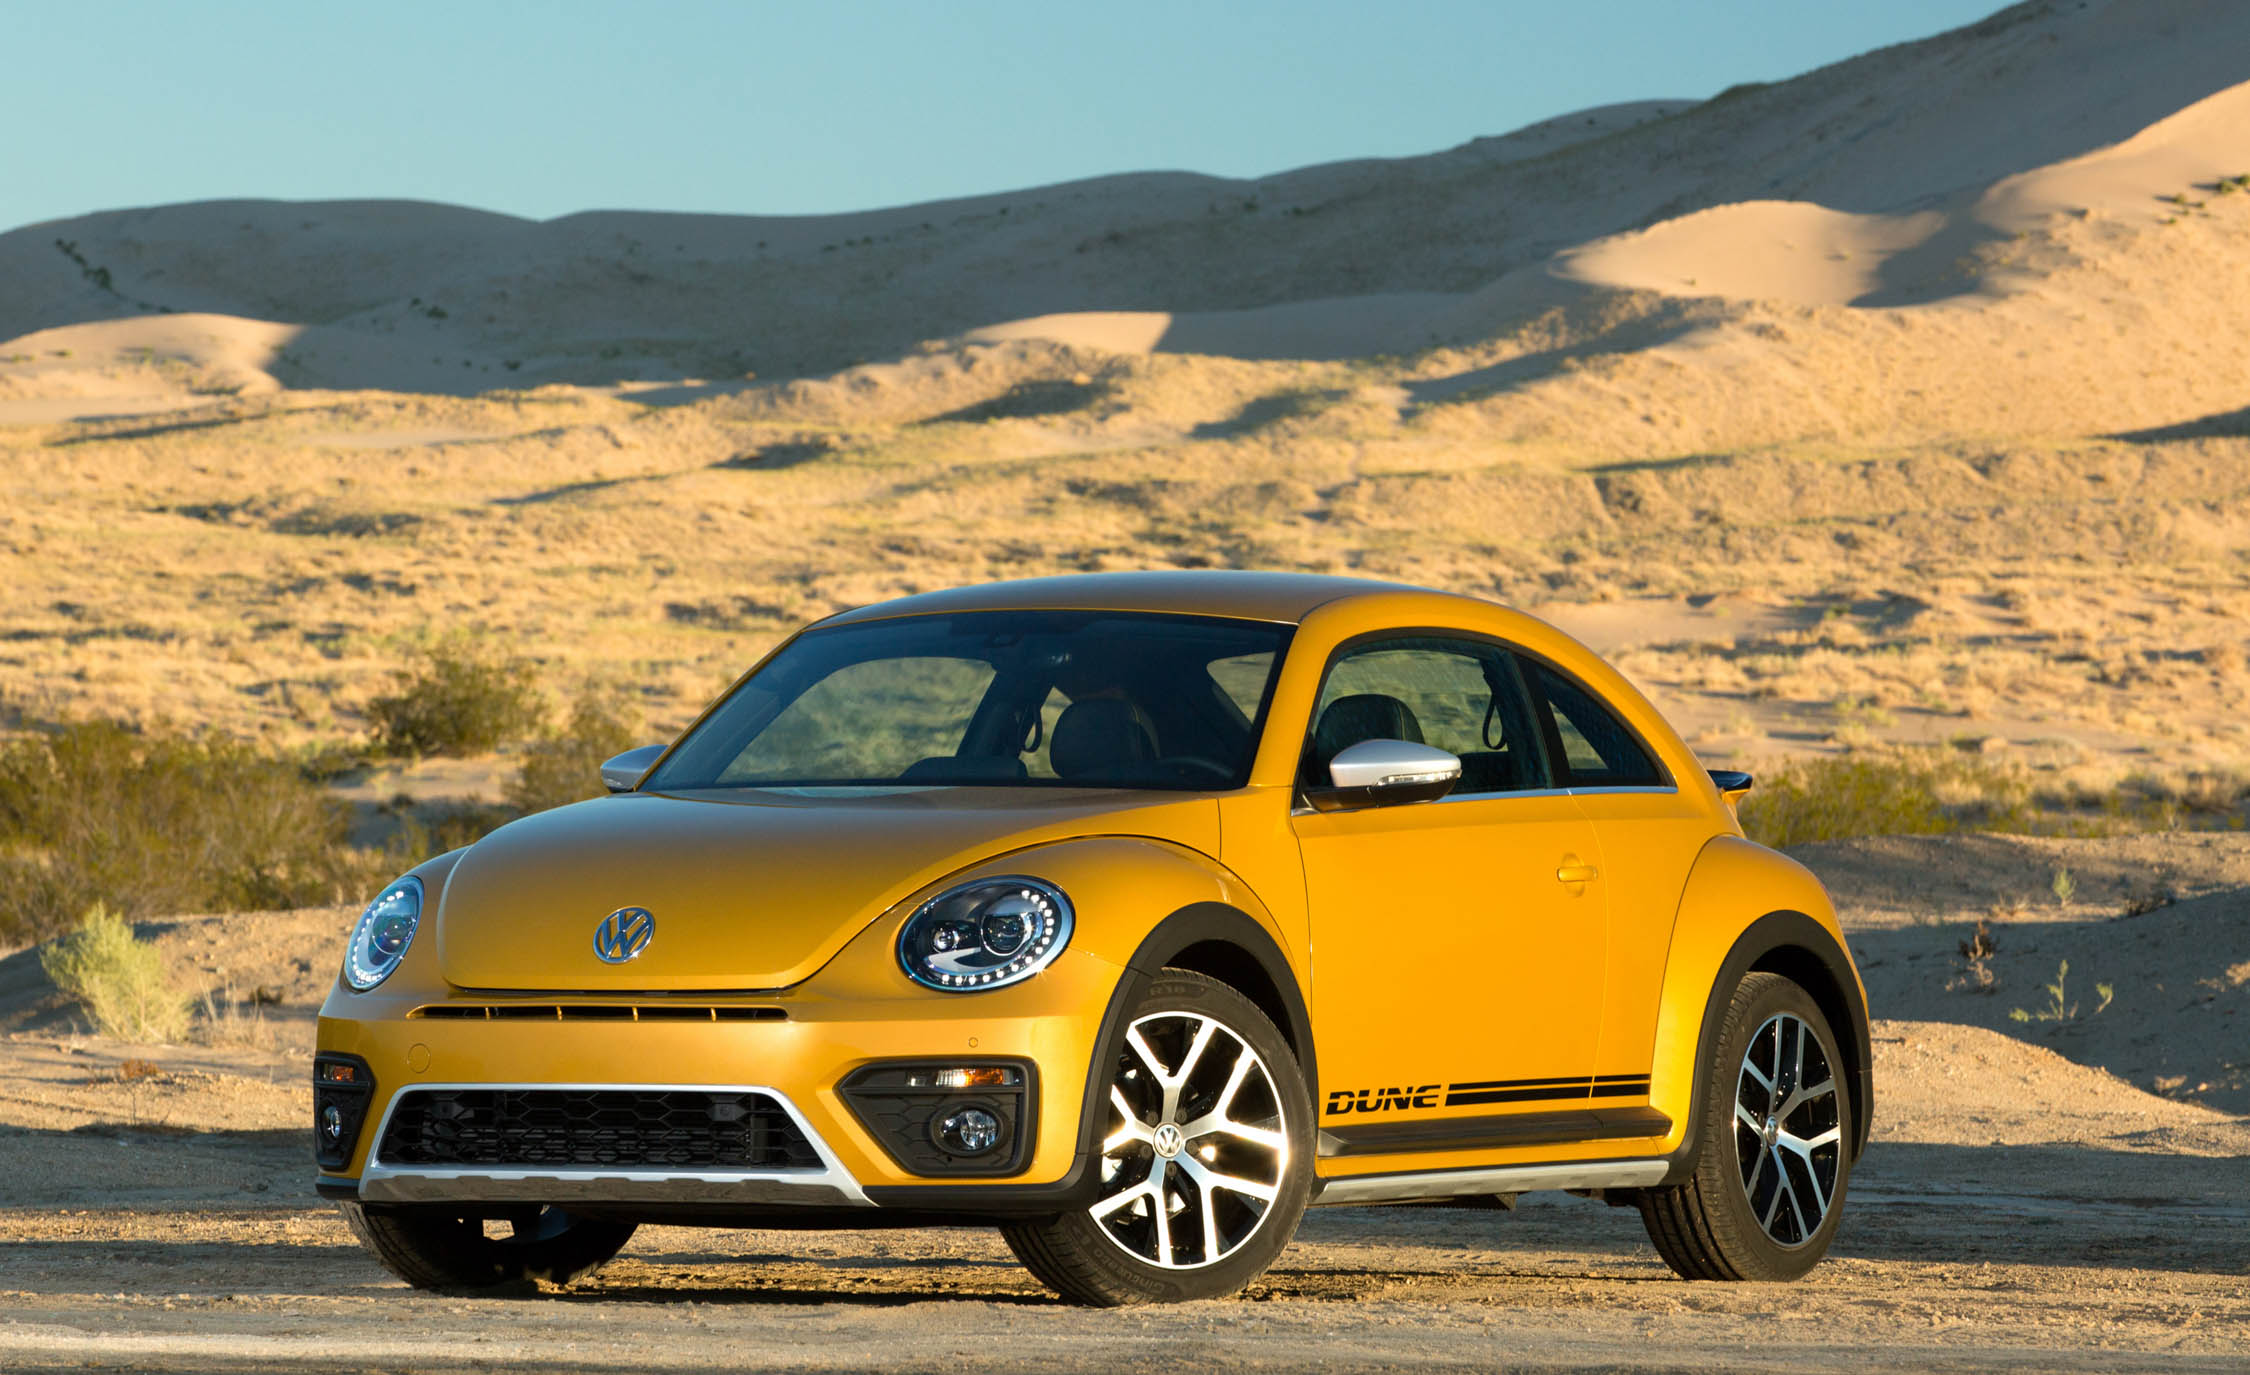 2016 Volkswagen Beetle Dune Exterior Full Front And Side (Photo 18 of 32)